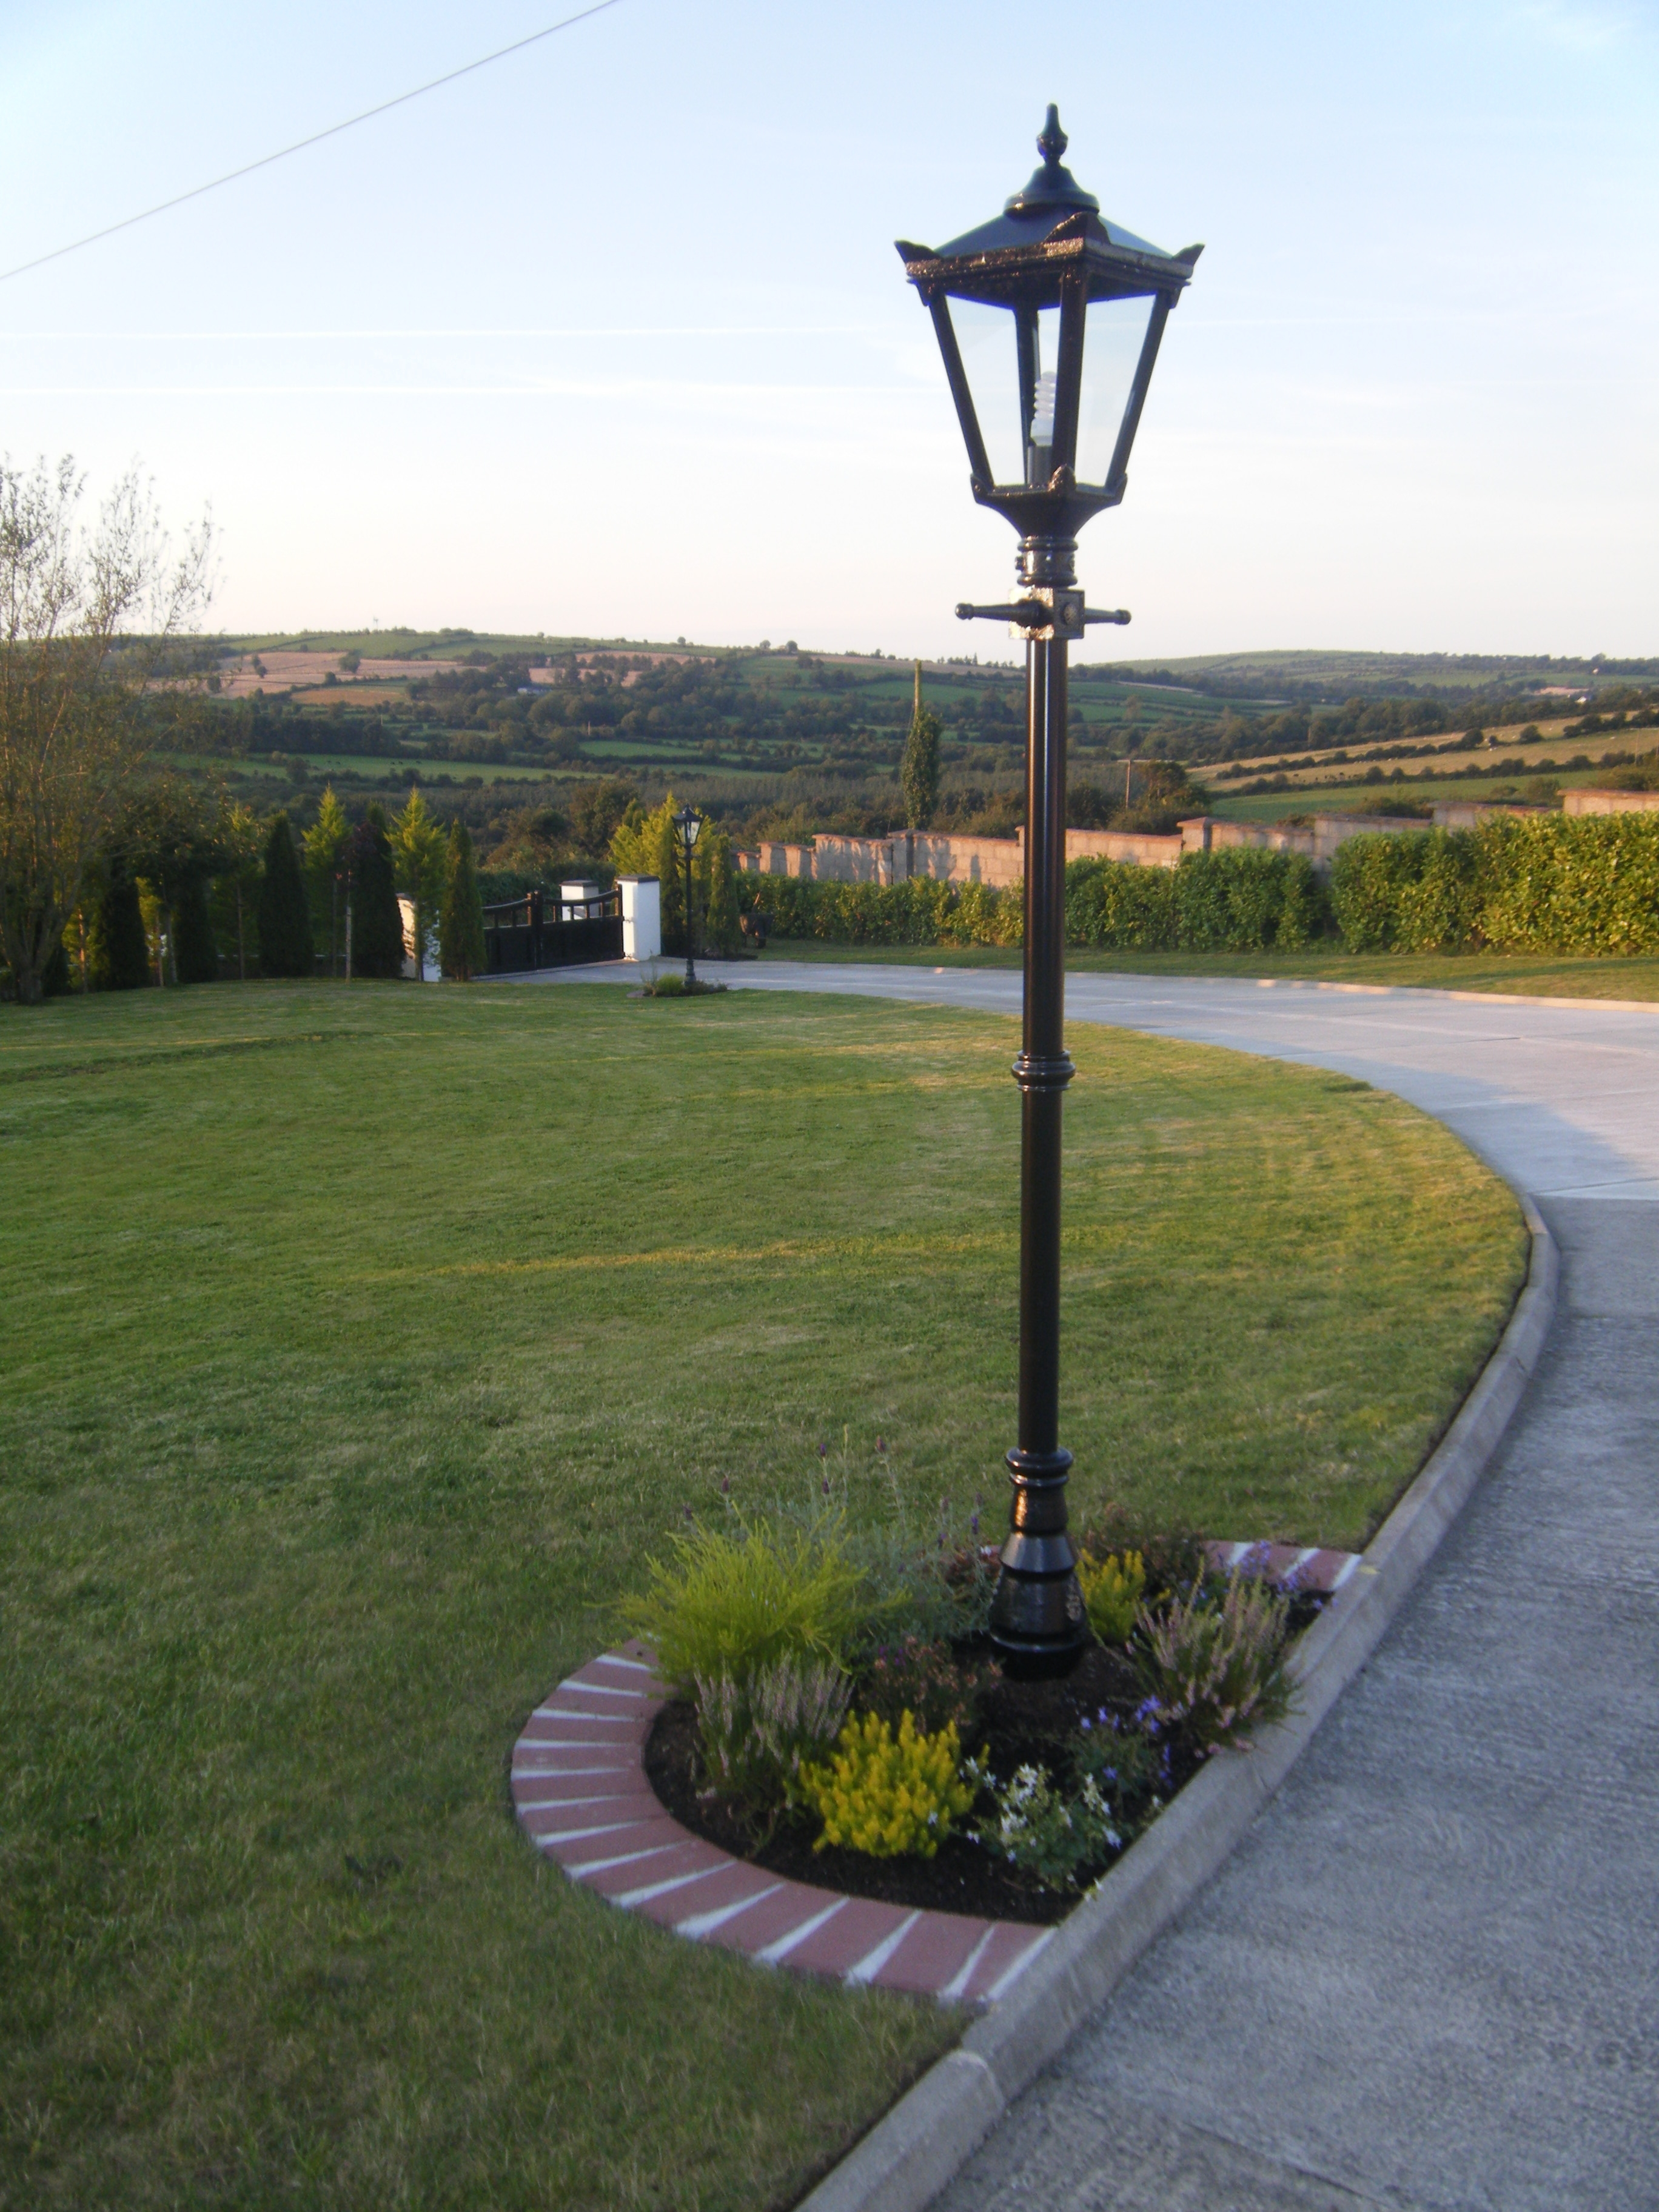 Outdoor Driveway Lanterns Regarding Best And Newest Outdoor Driveway Lighting Inspirational 293 Best Images On Pinterest (View 5 of 20)